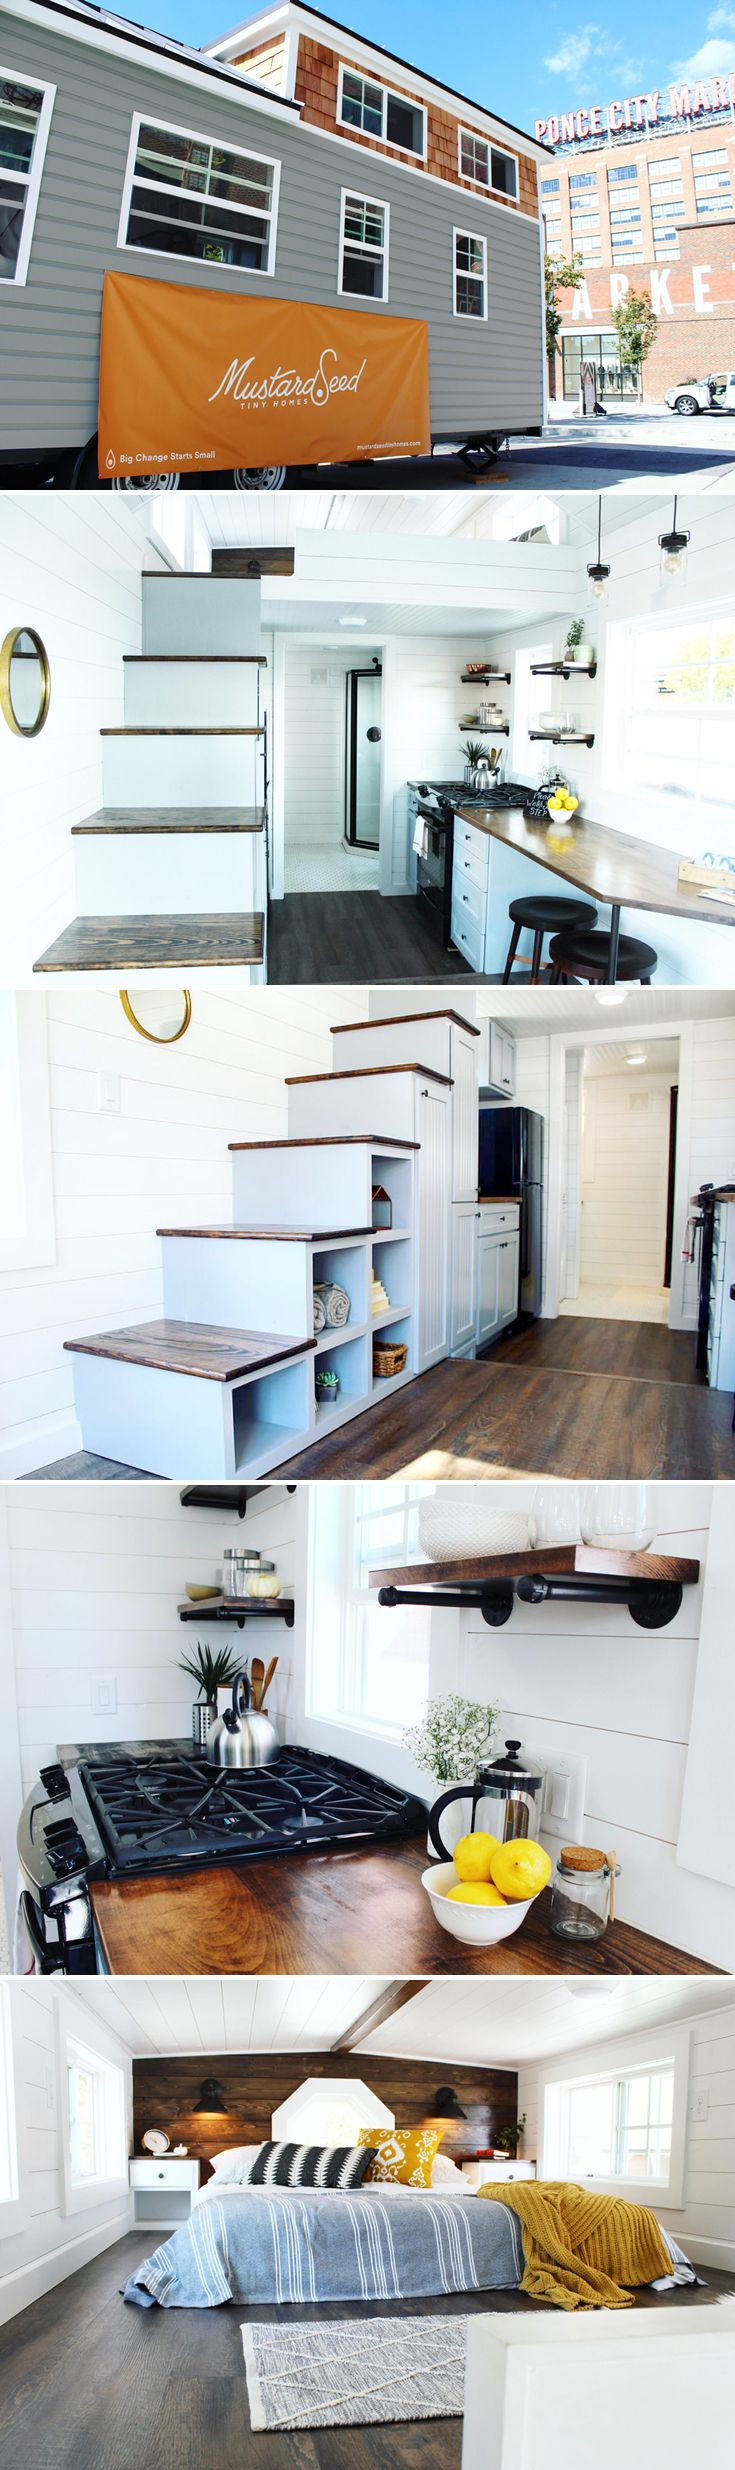 Photo of Sprout by Mustard Seed Tiny Homes – Tiny Living